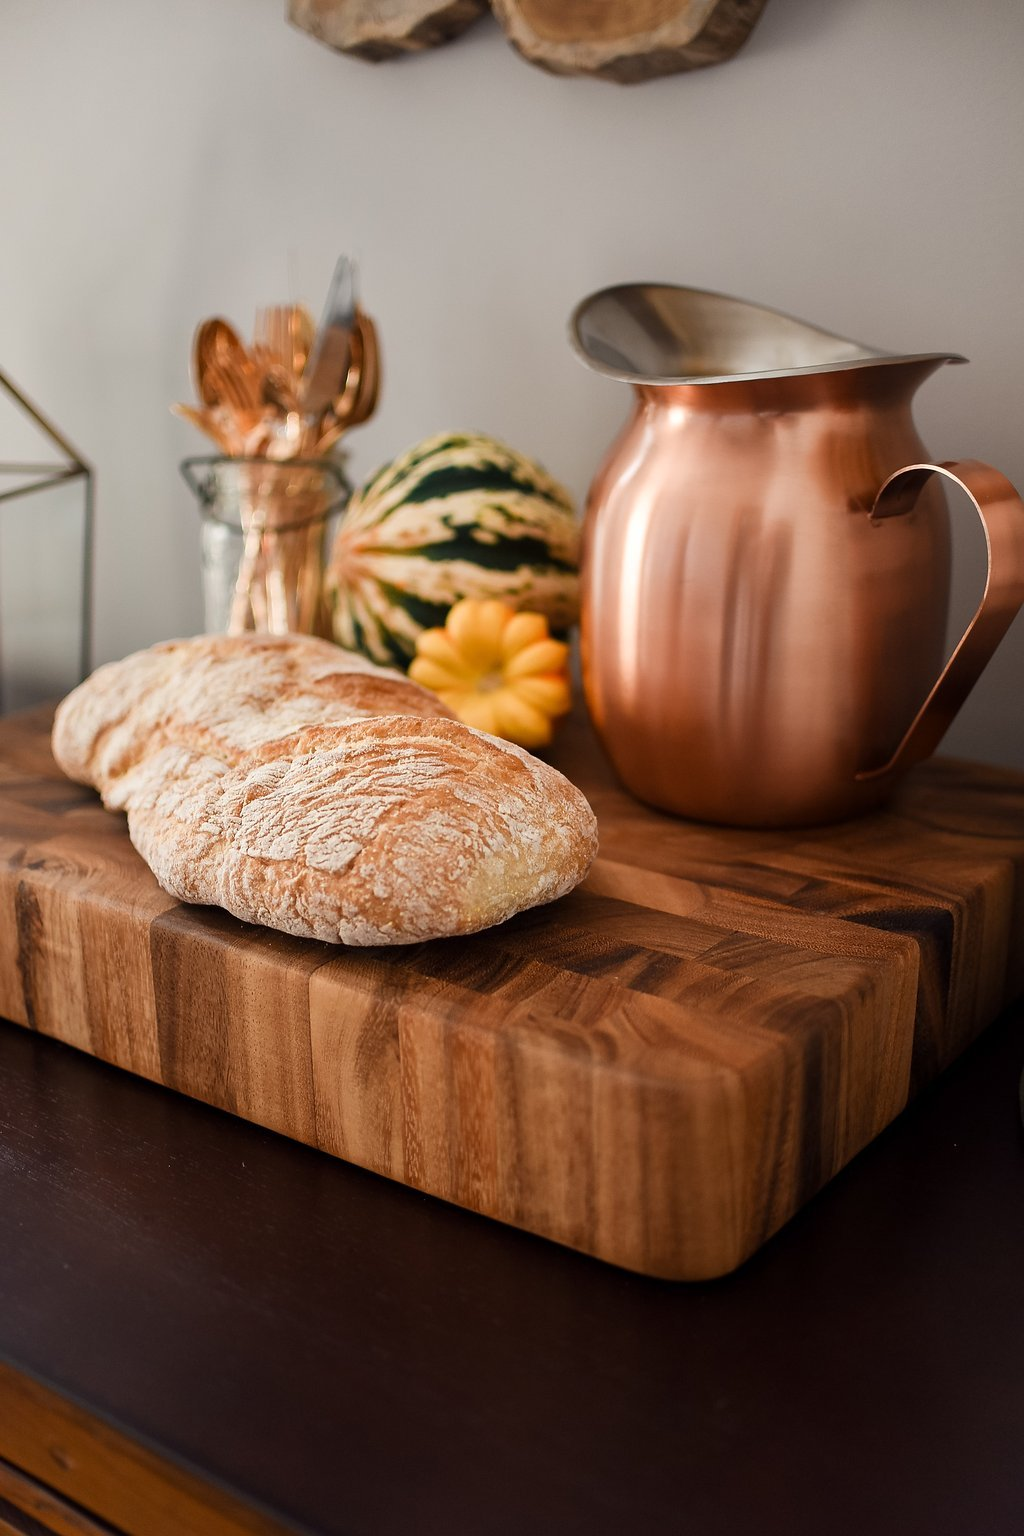 A fresh loaf of bread next to a copper pitcher on a wood serving platter